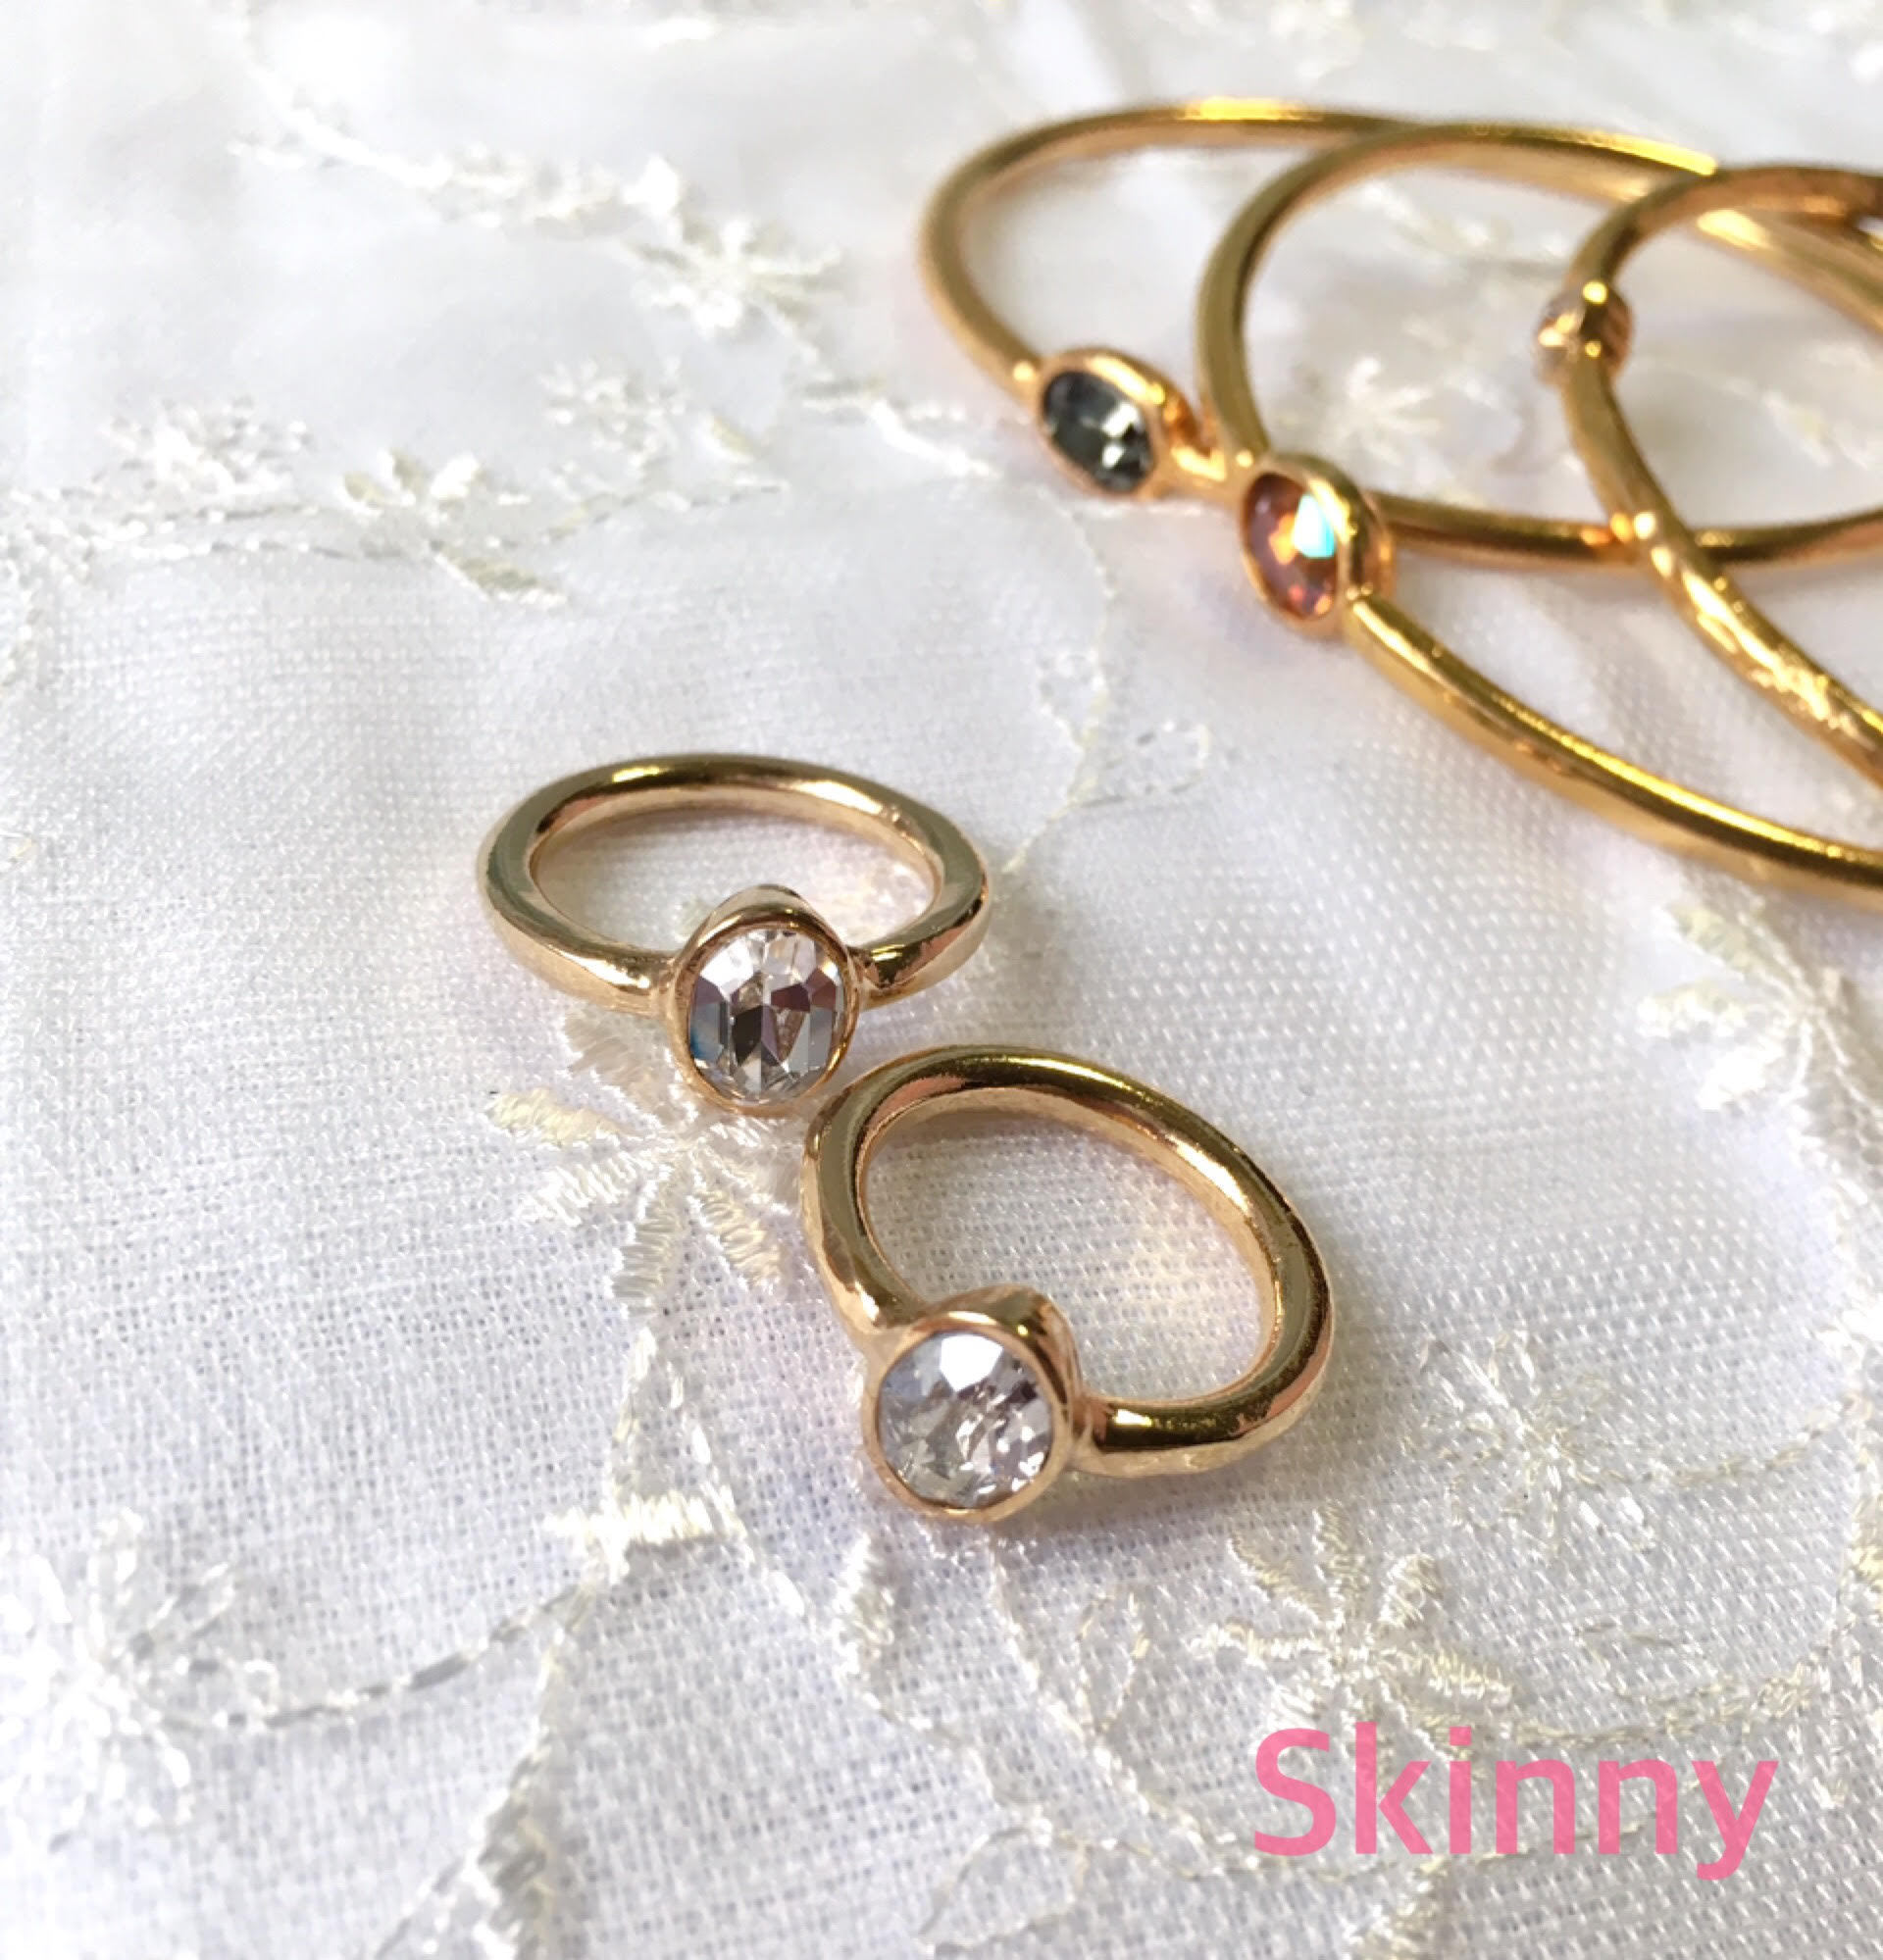 shop skinny accessories